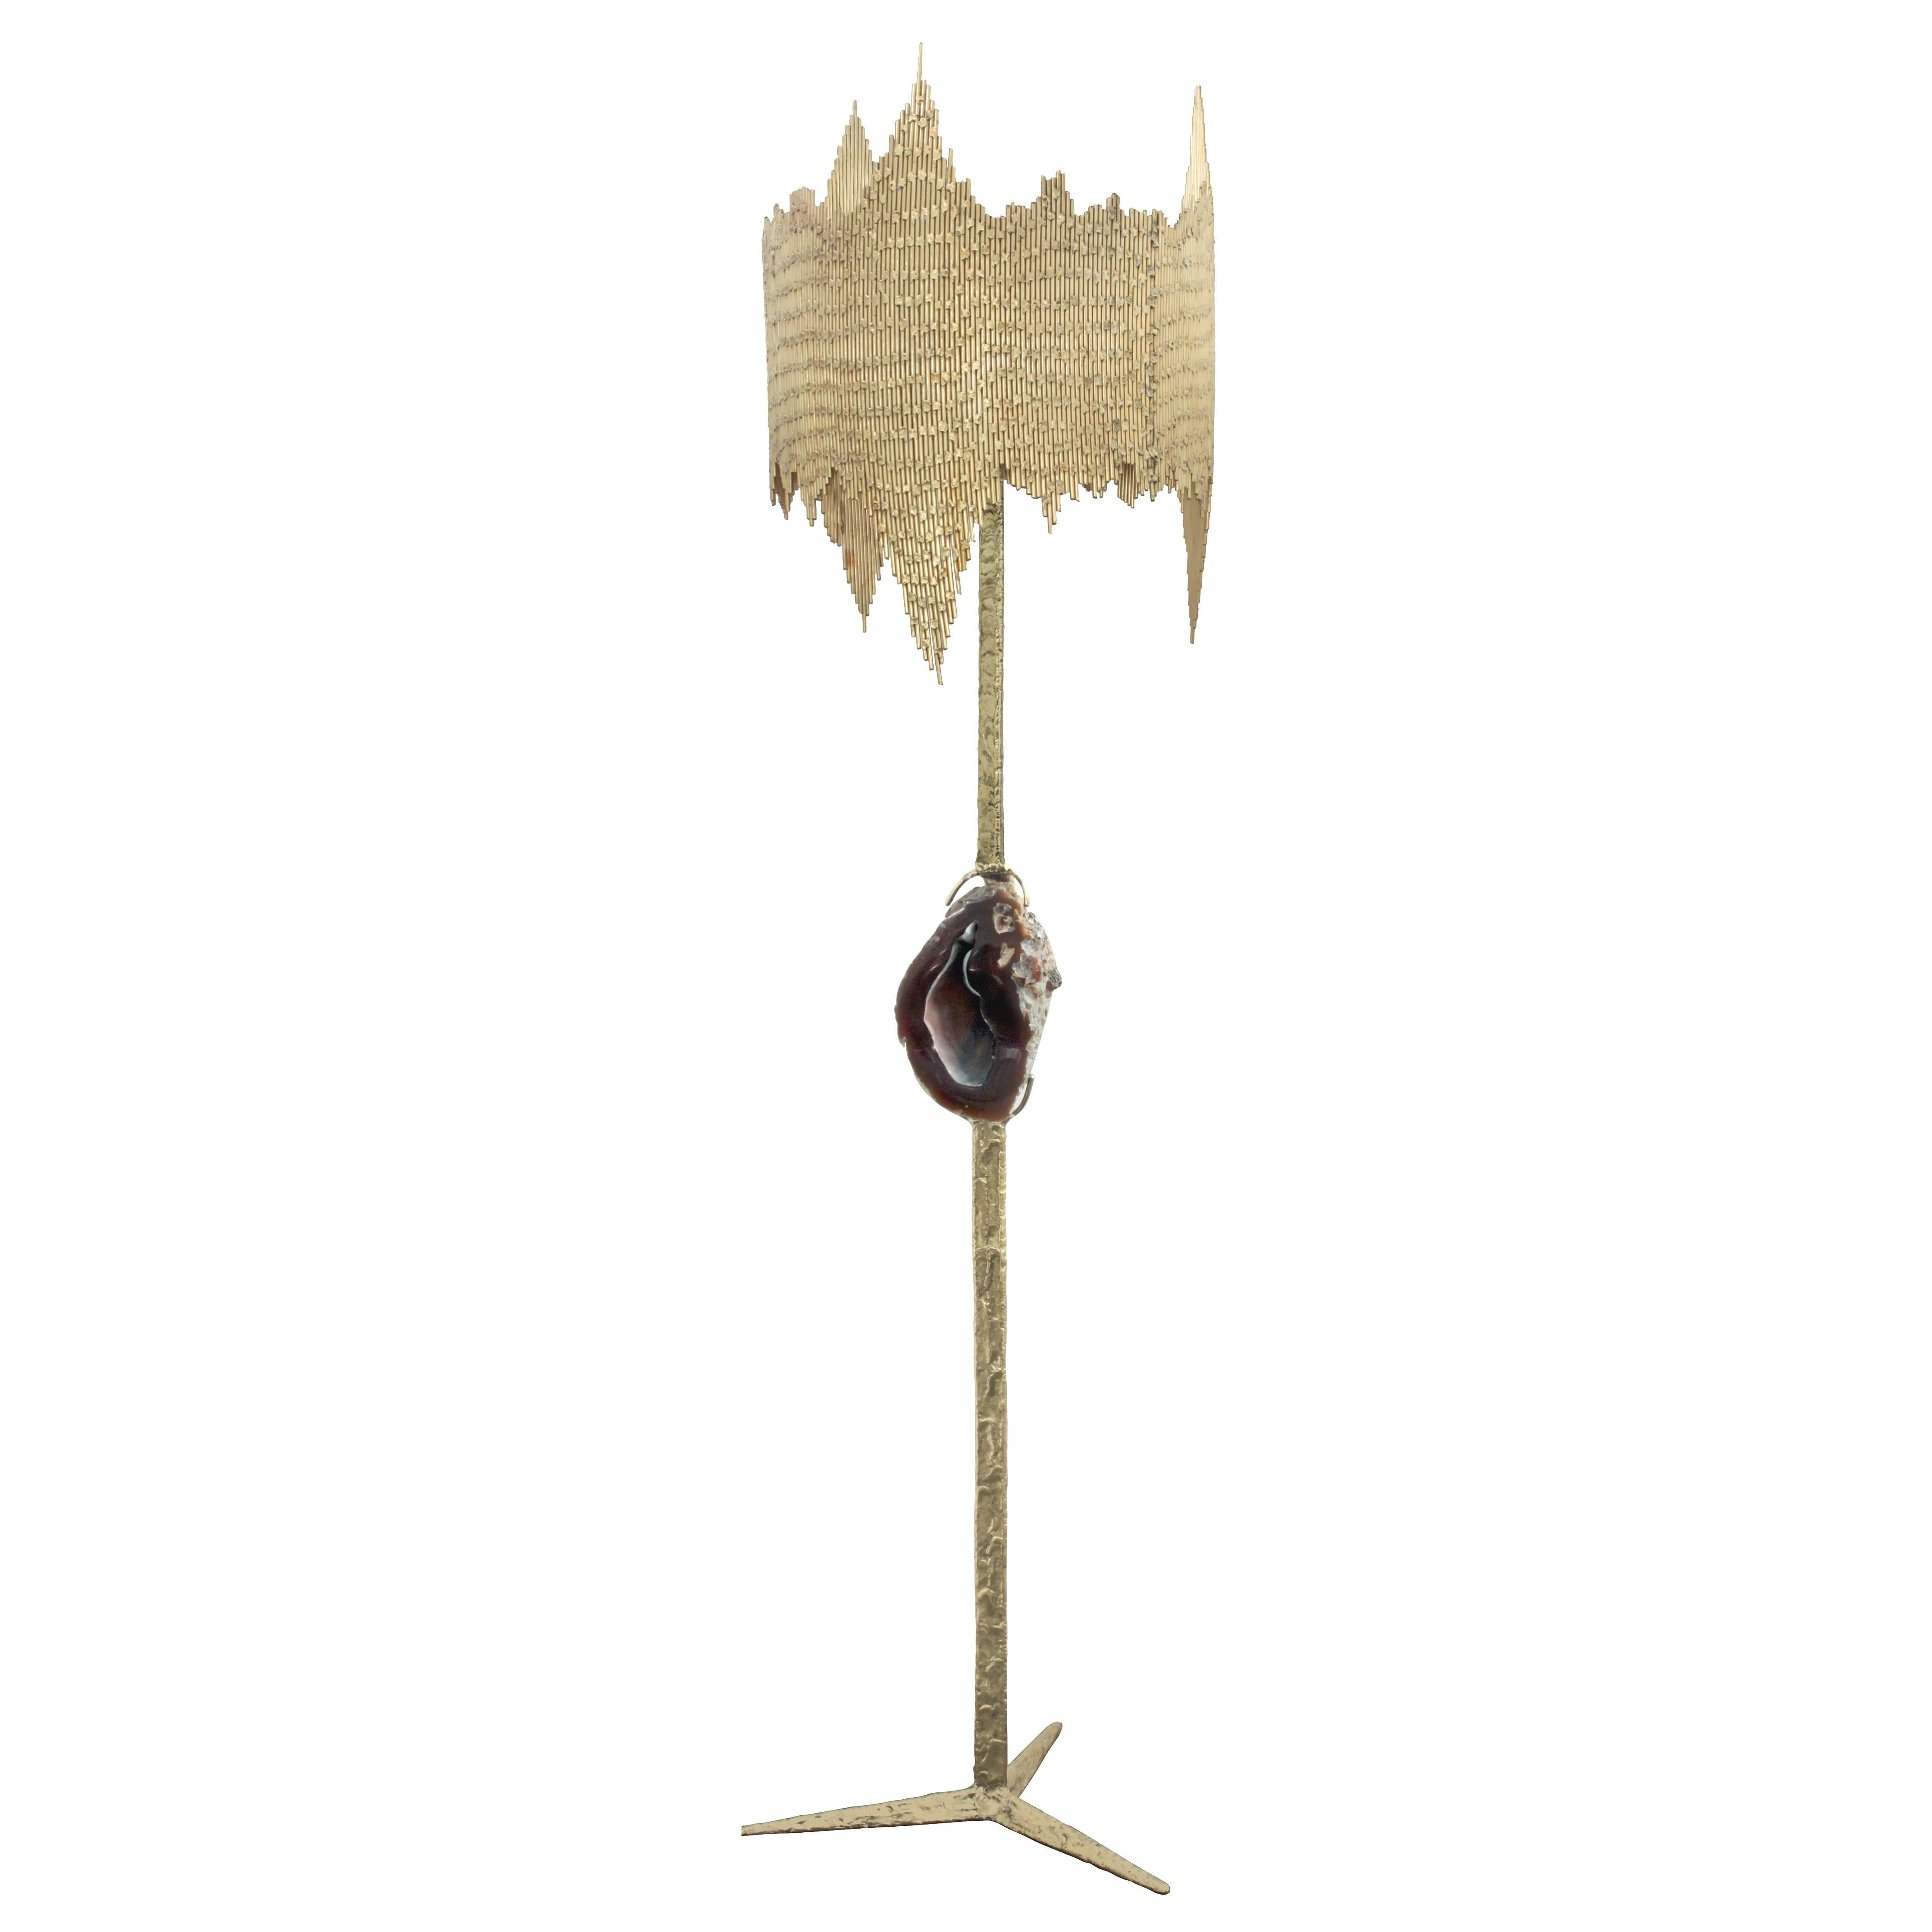 Floor Lamp Lt8 By Osvaldo Borsani, Arredoluce, Italy, 1958 For